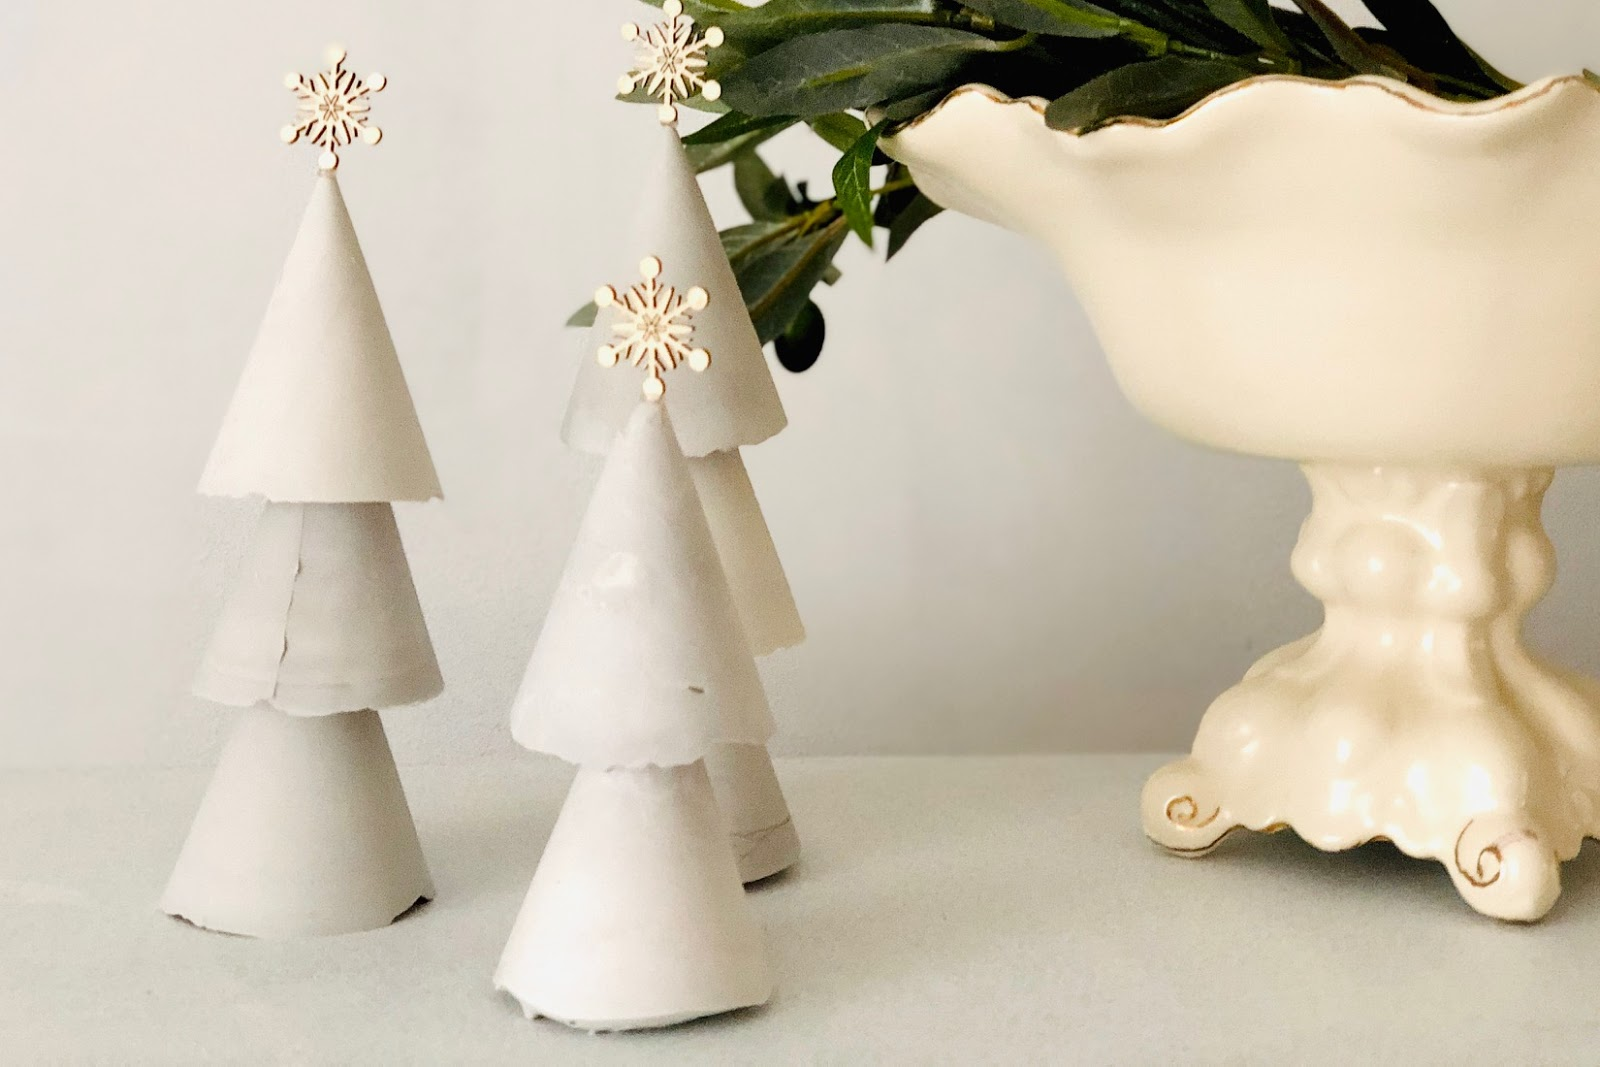 DIY Concrete Christmas Trees